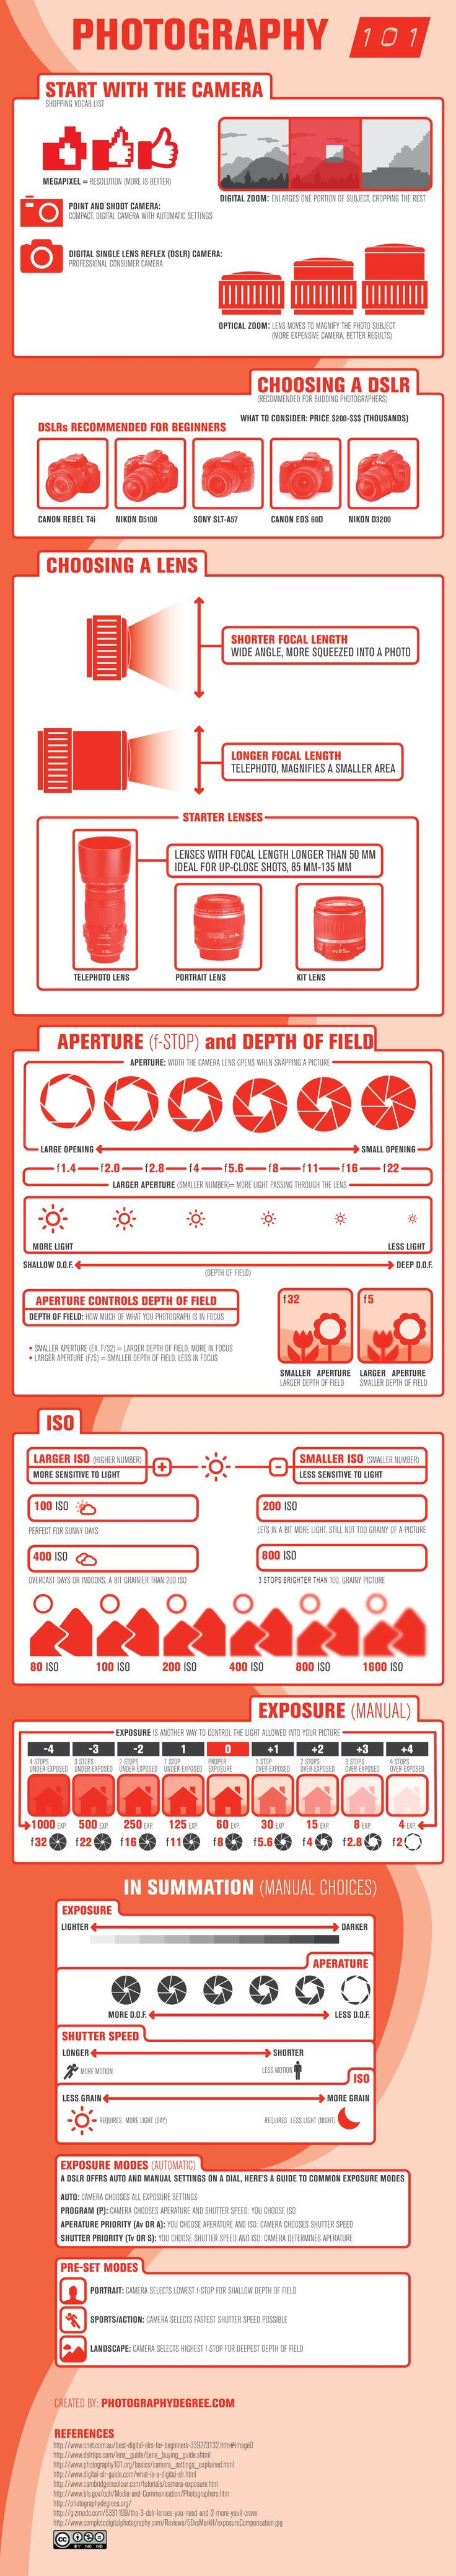 #Photography 101 | Great #Infographic for Beginning Photographers